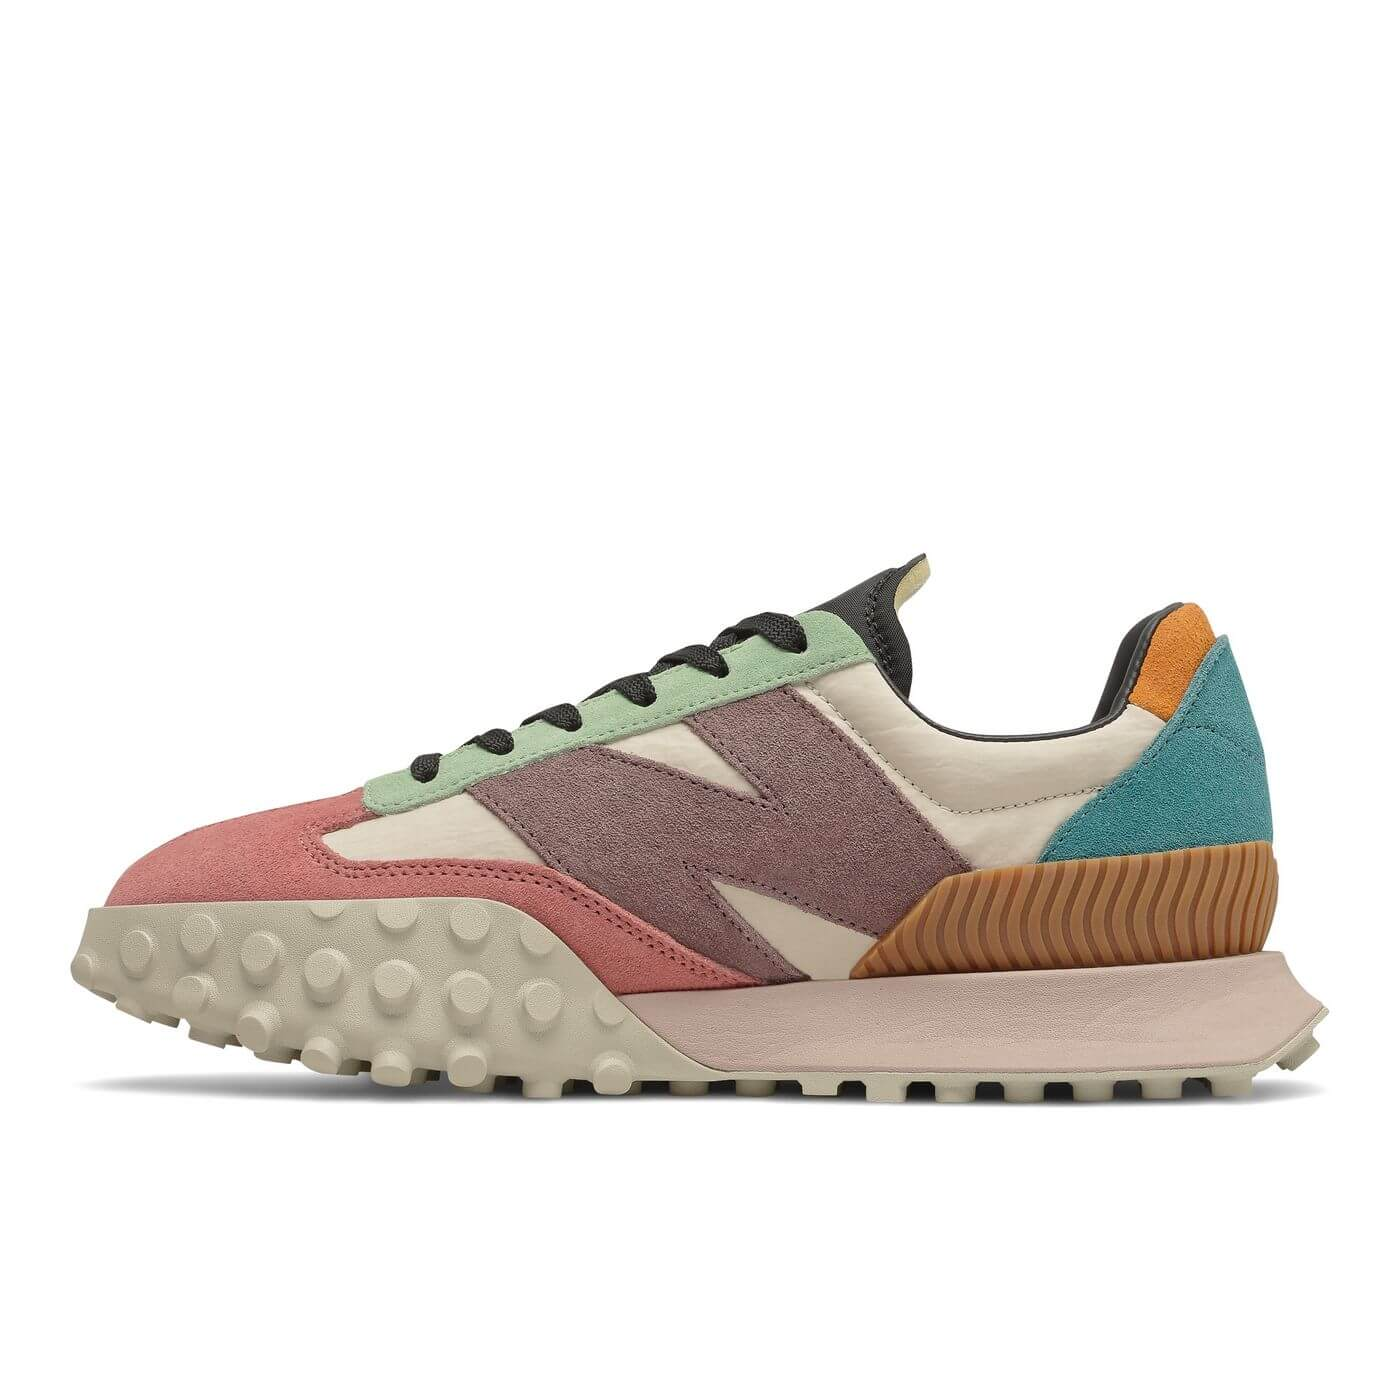 New Balance - Shifted Collection - XC-72